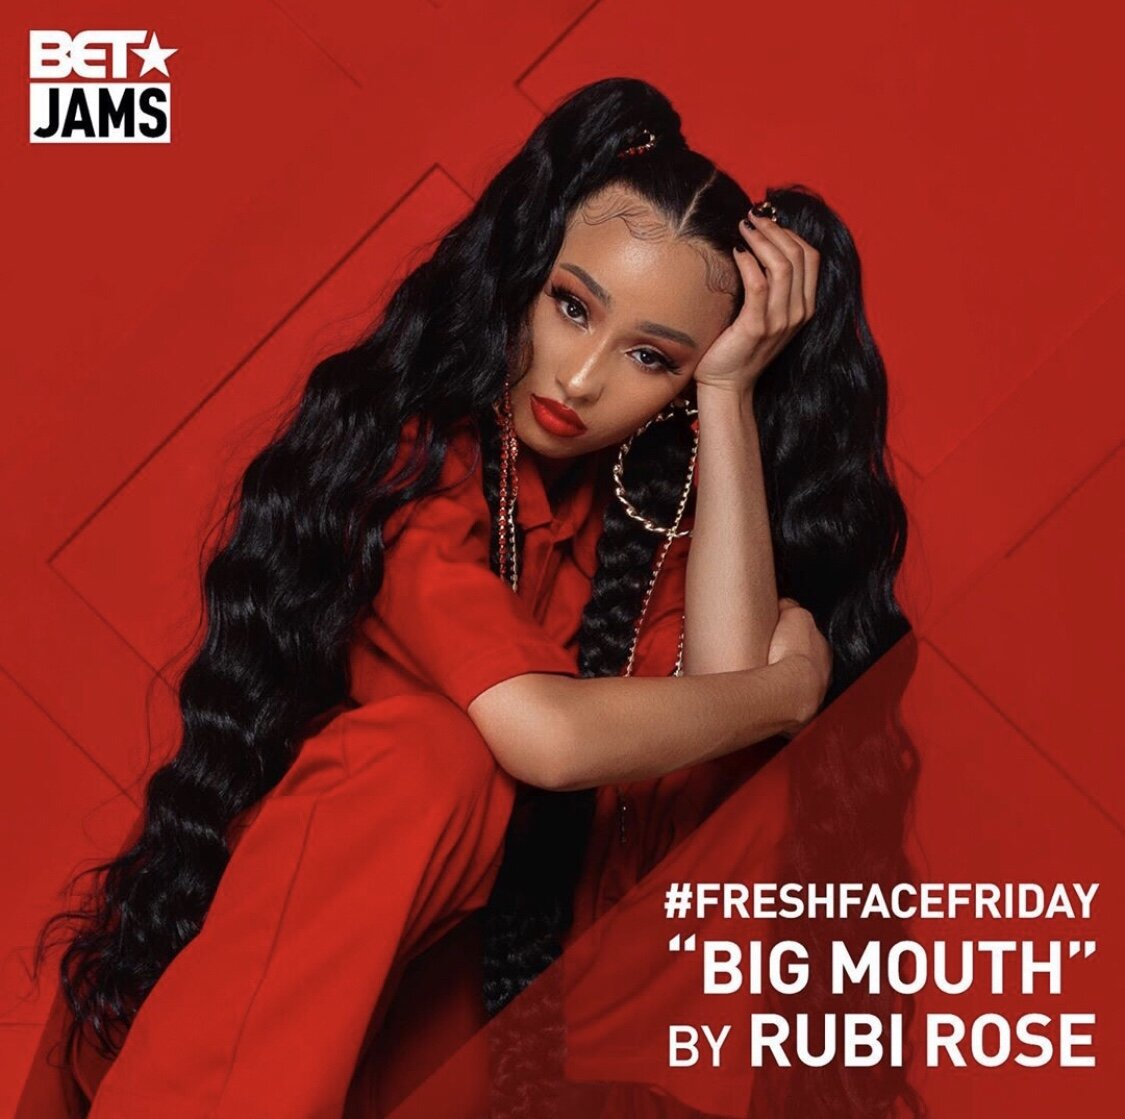 """RUBI ROSE - Rubi Rose an model, video vixen, and recording artist from Atlanta, Georgia. Signed to LA Reid's Hitco Entertainment based LA/NYC/ATL. Rubi R has starred in """"Bad and Boujee"""" by Migos and Lil Uzi Vert"""", and ft in a selection of top artist official music videos like Playboi Carti """"On Top"""", and Raury """"Cigarette Song. Embarking on her music career followed by her new track Big Mouth will be featured on BET Jamz for #freshfacefriday09/27/2019"""